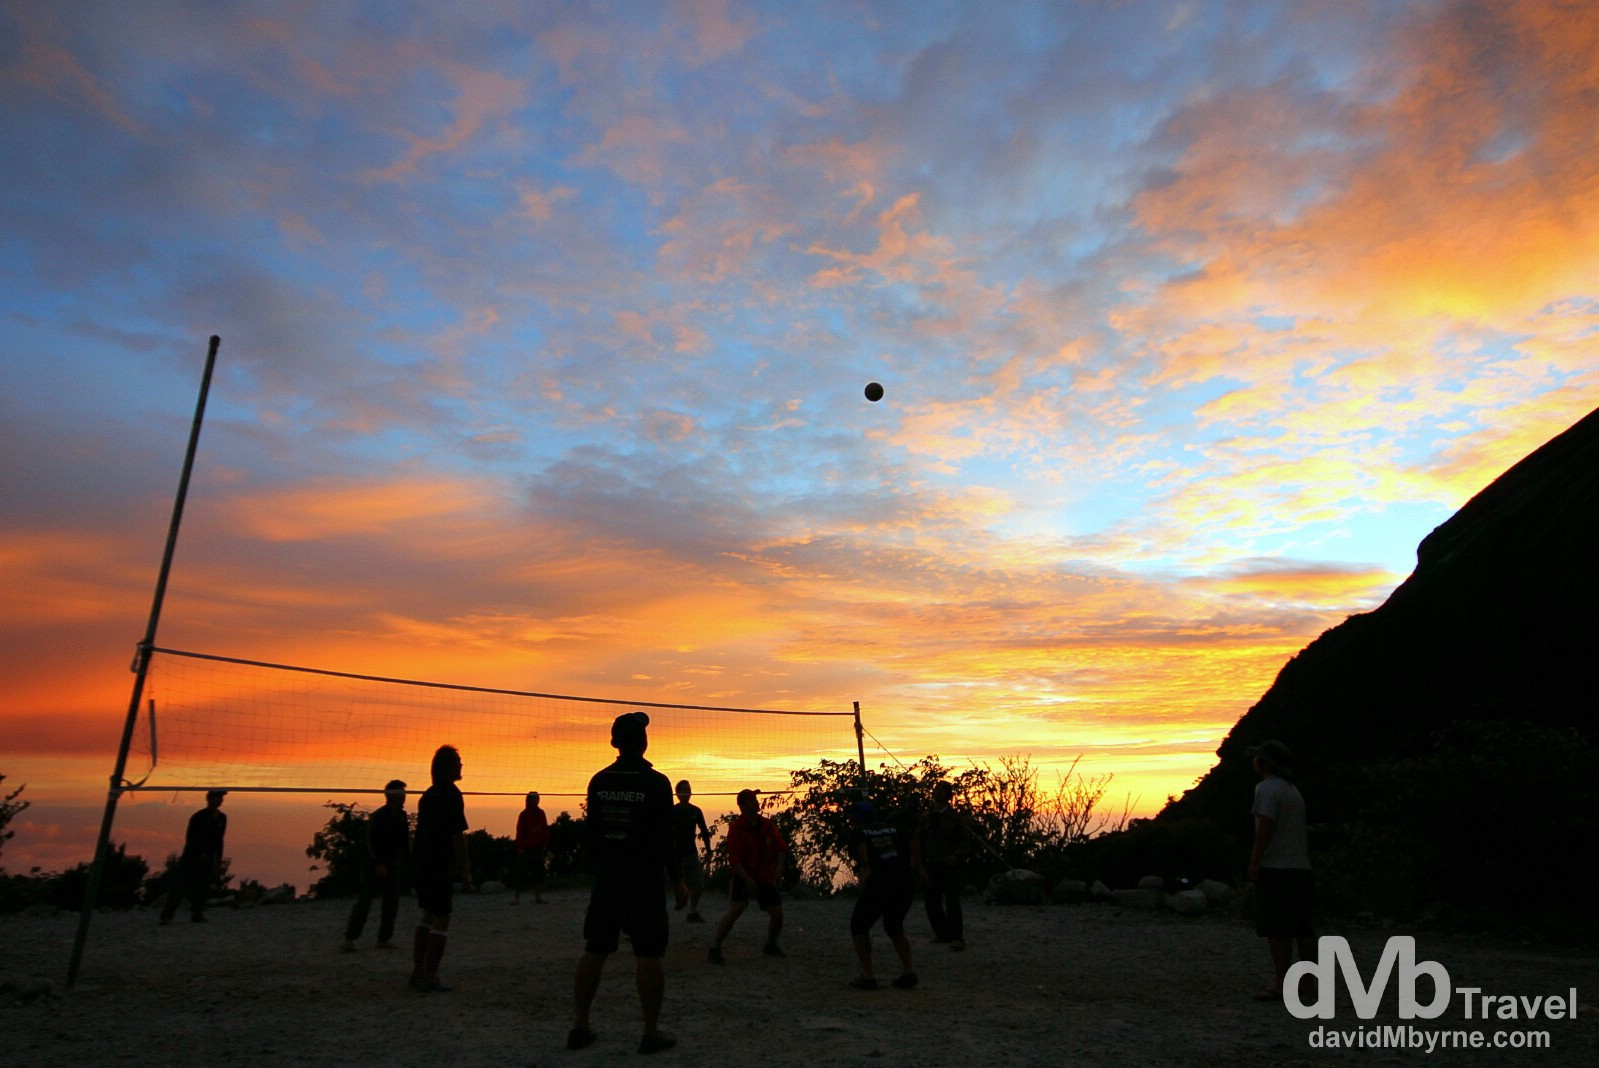 Volleyball at sunset at Laban Rata high on the slopes of Mount Kinabalu, Sabah, Malaysian Borneo. June 22nd 2012.